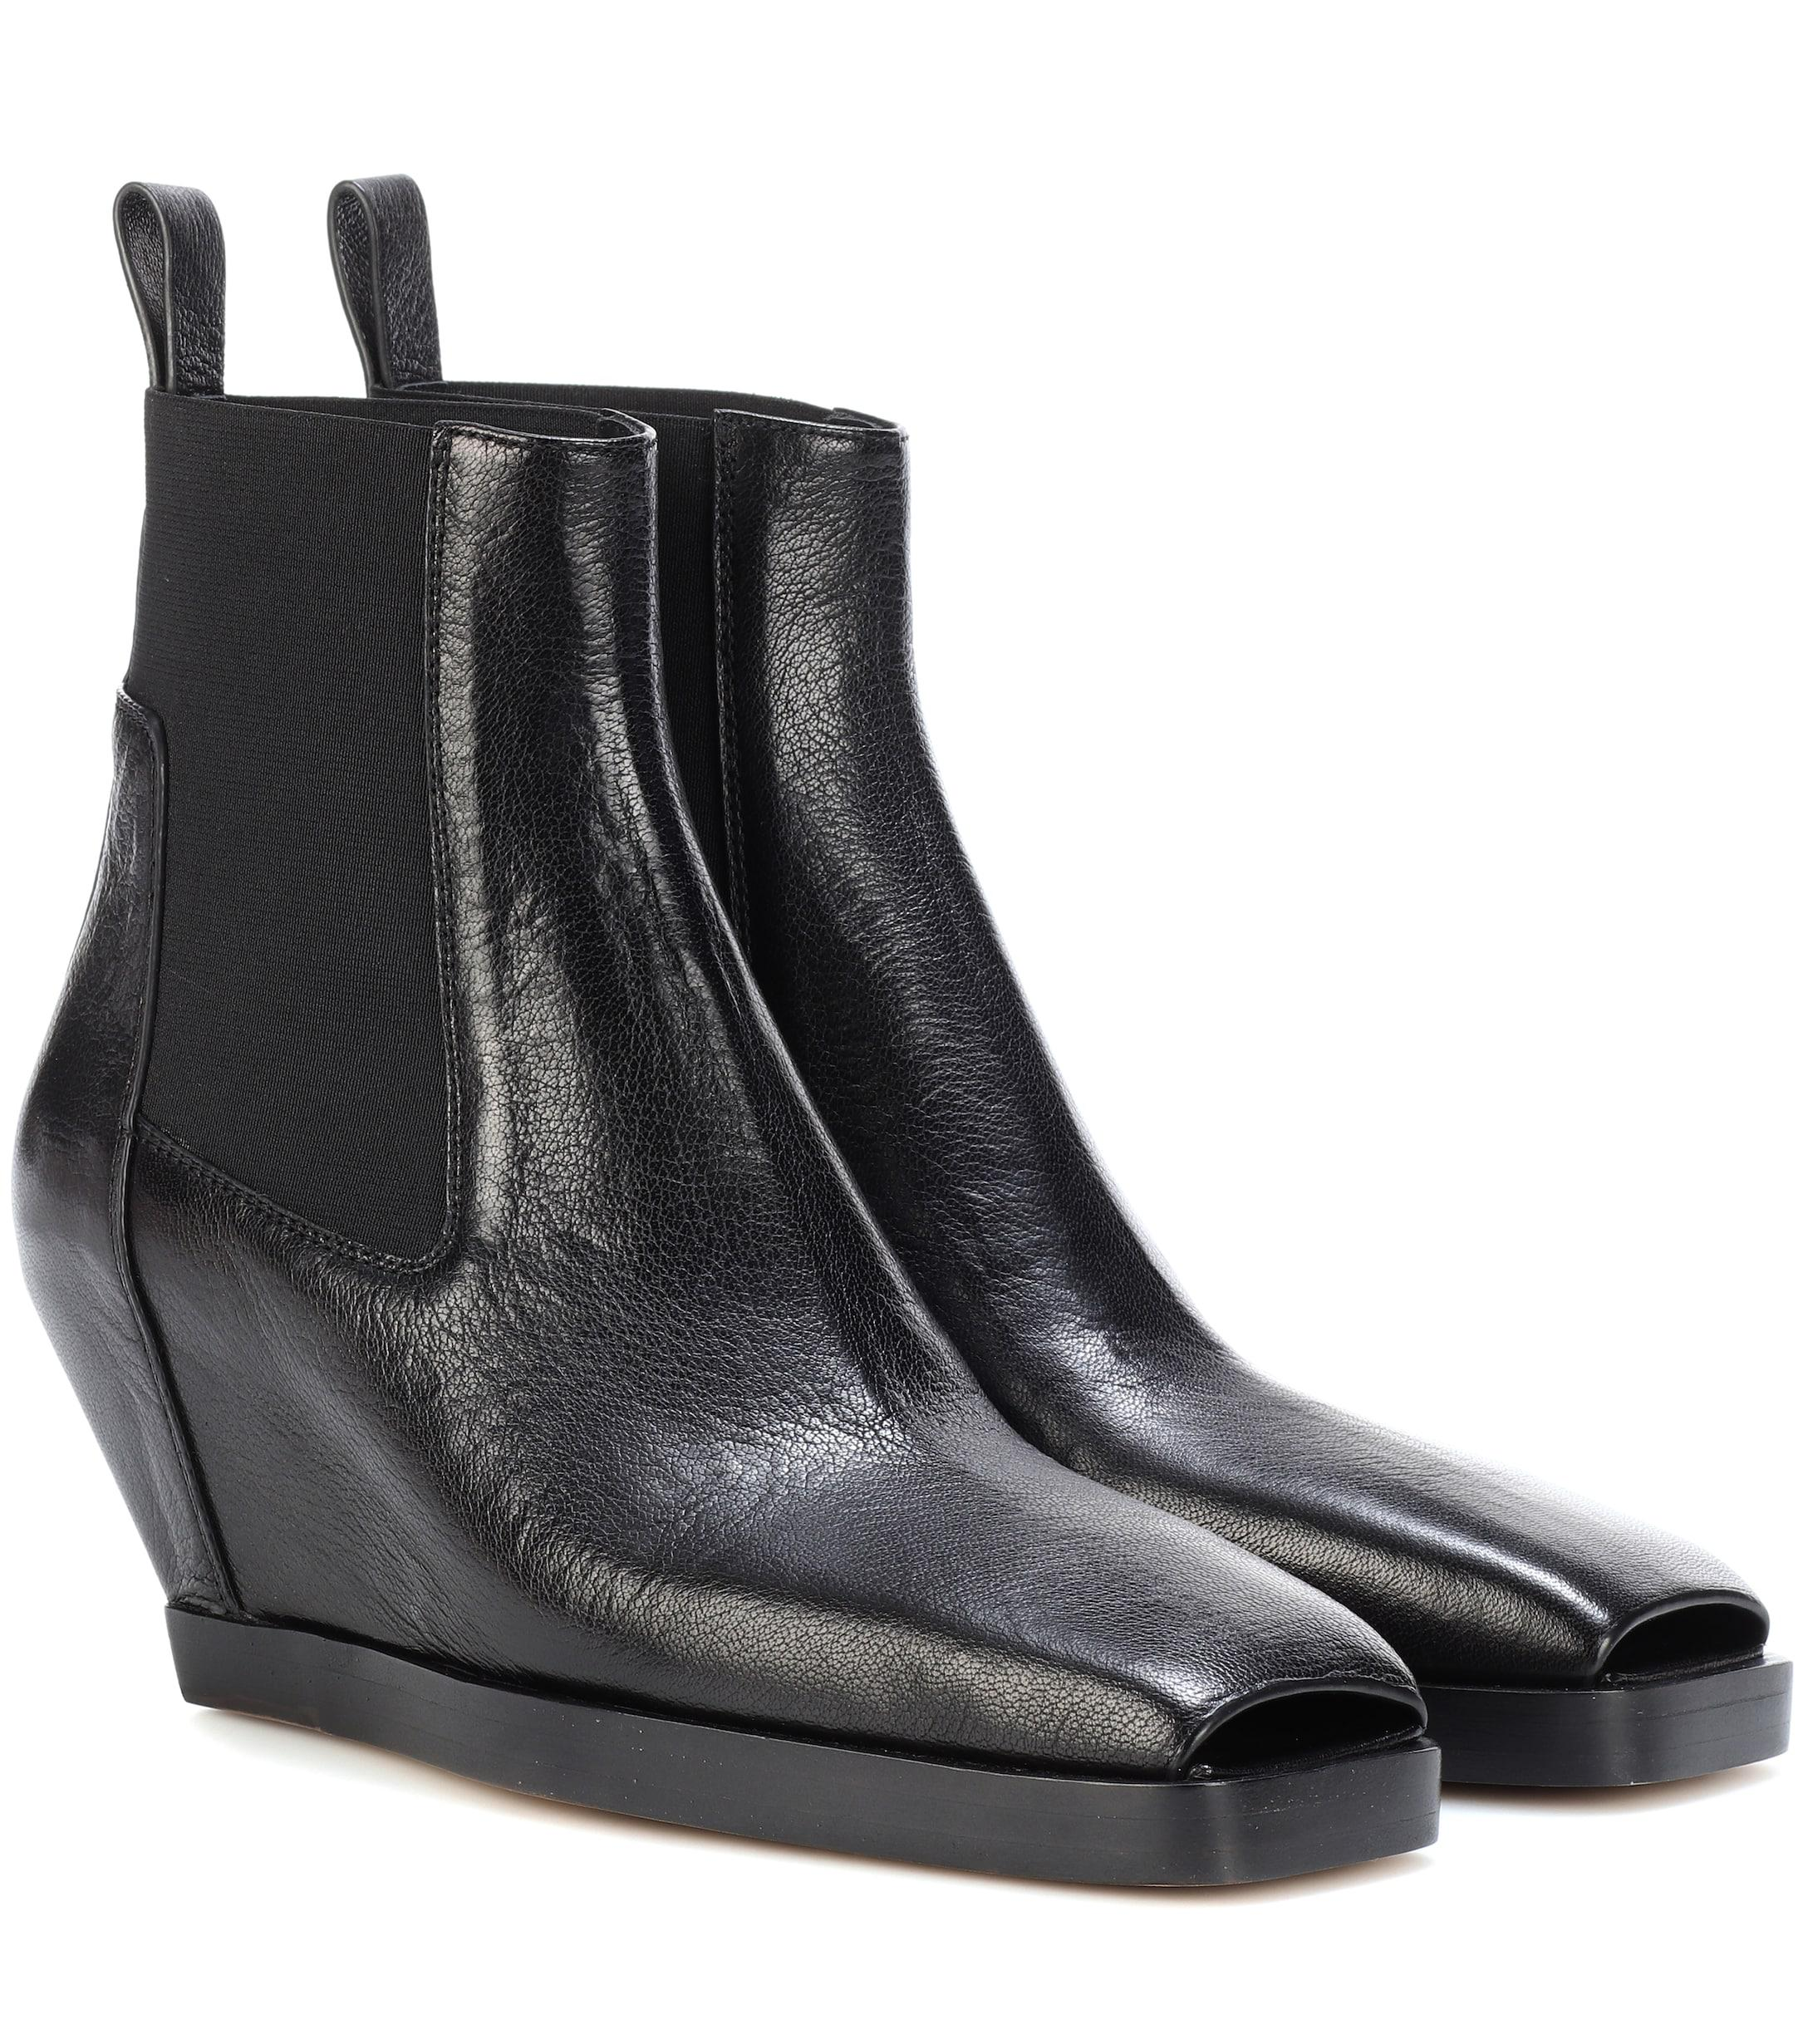 8b5dd4810f3a Lyst - Rick Owens Leather Ankle Boots in Black